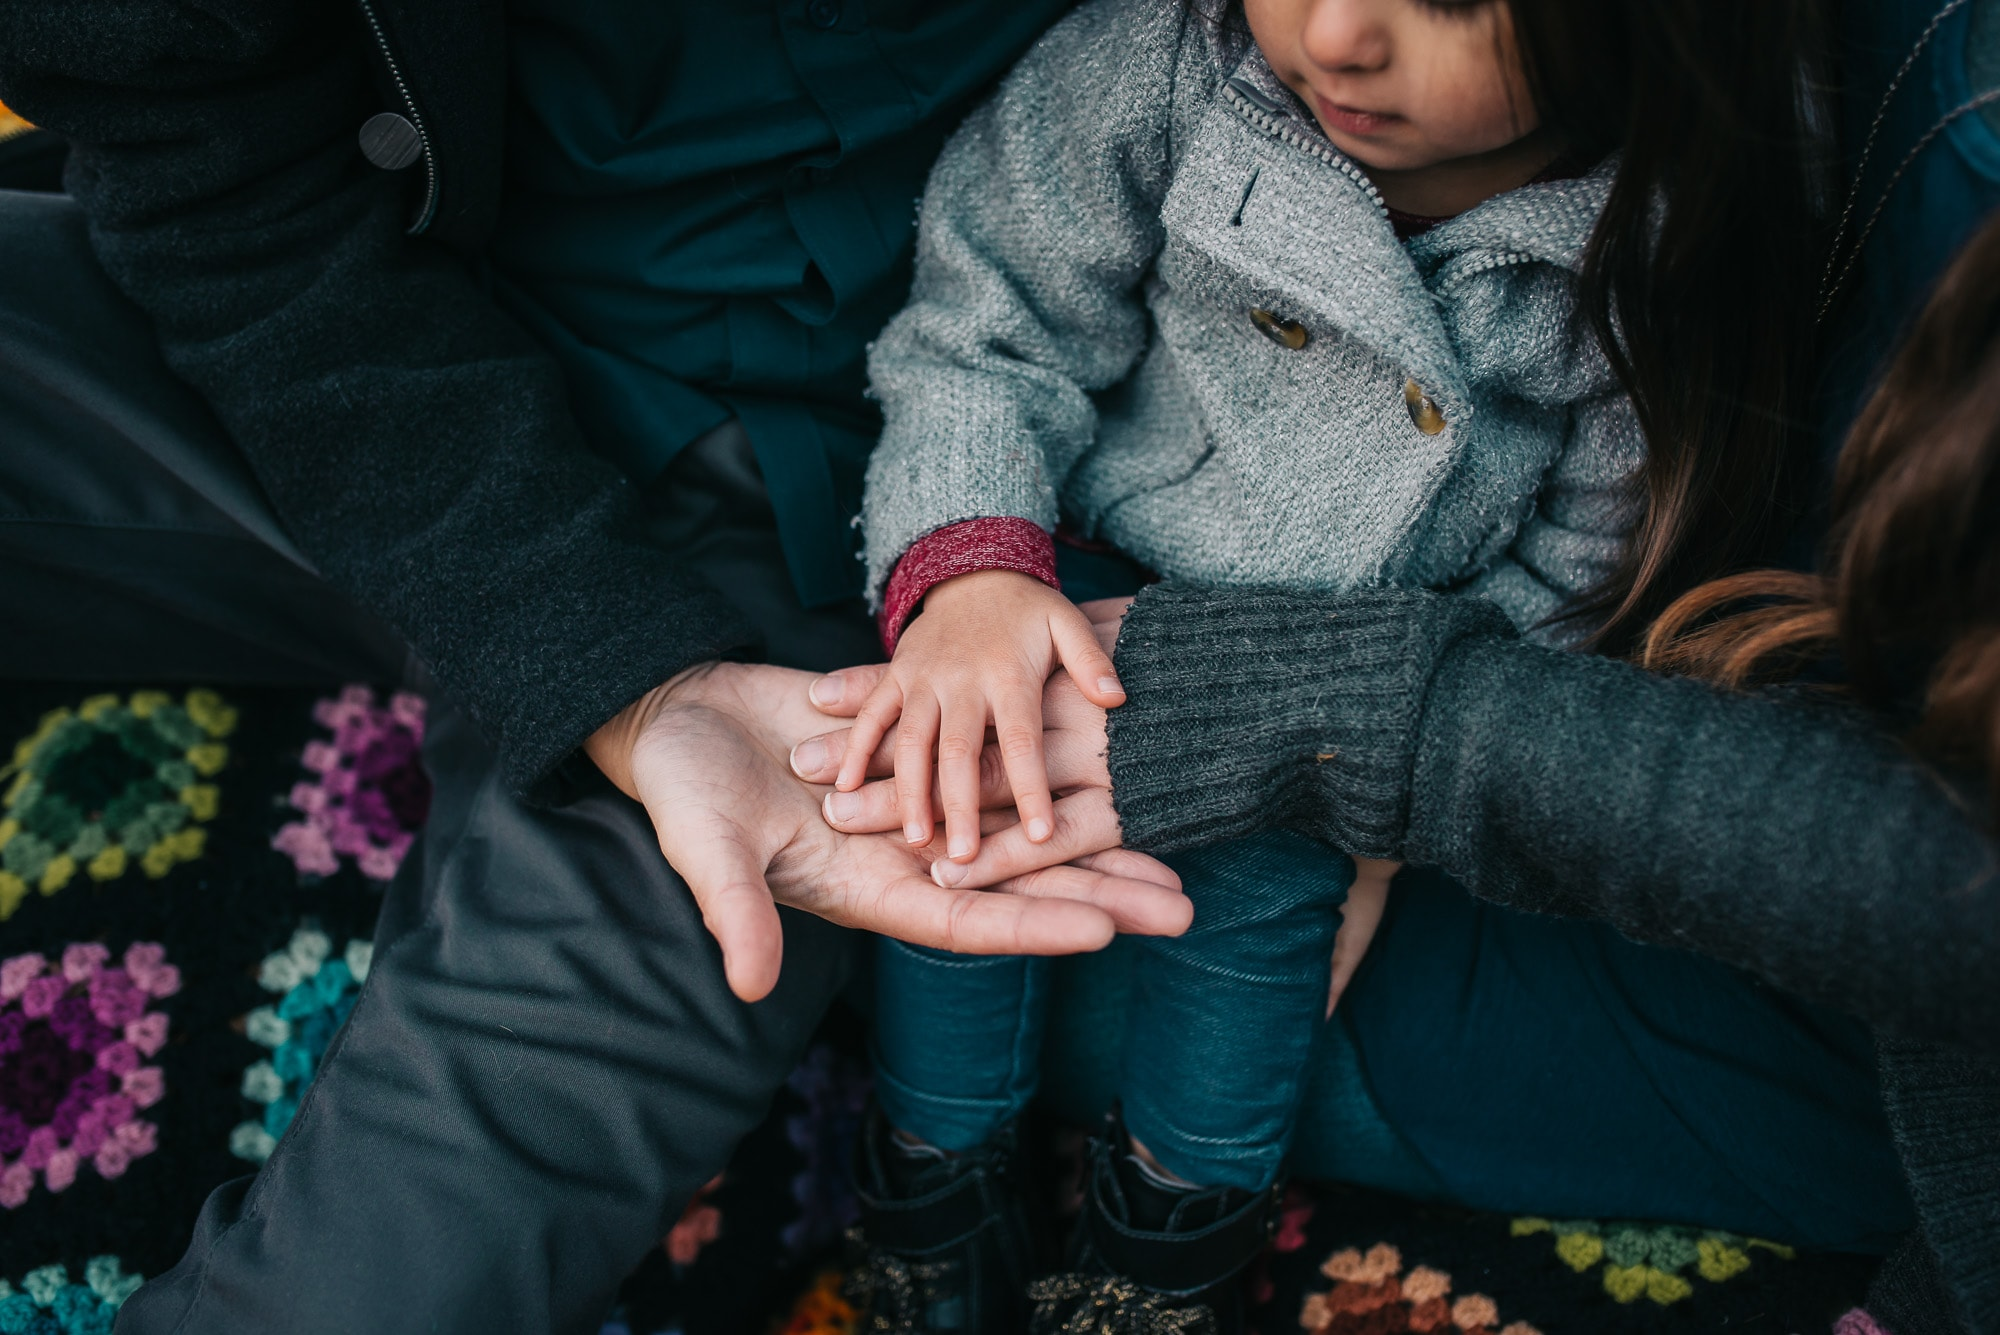 Vancouver Family Photographer asks family to put hands together in photo